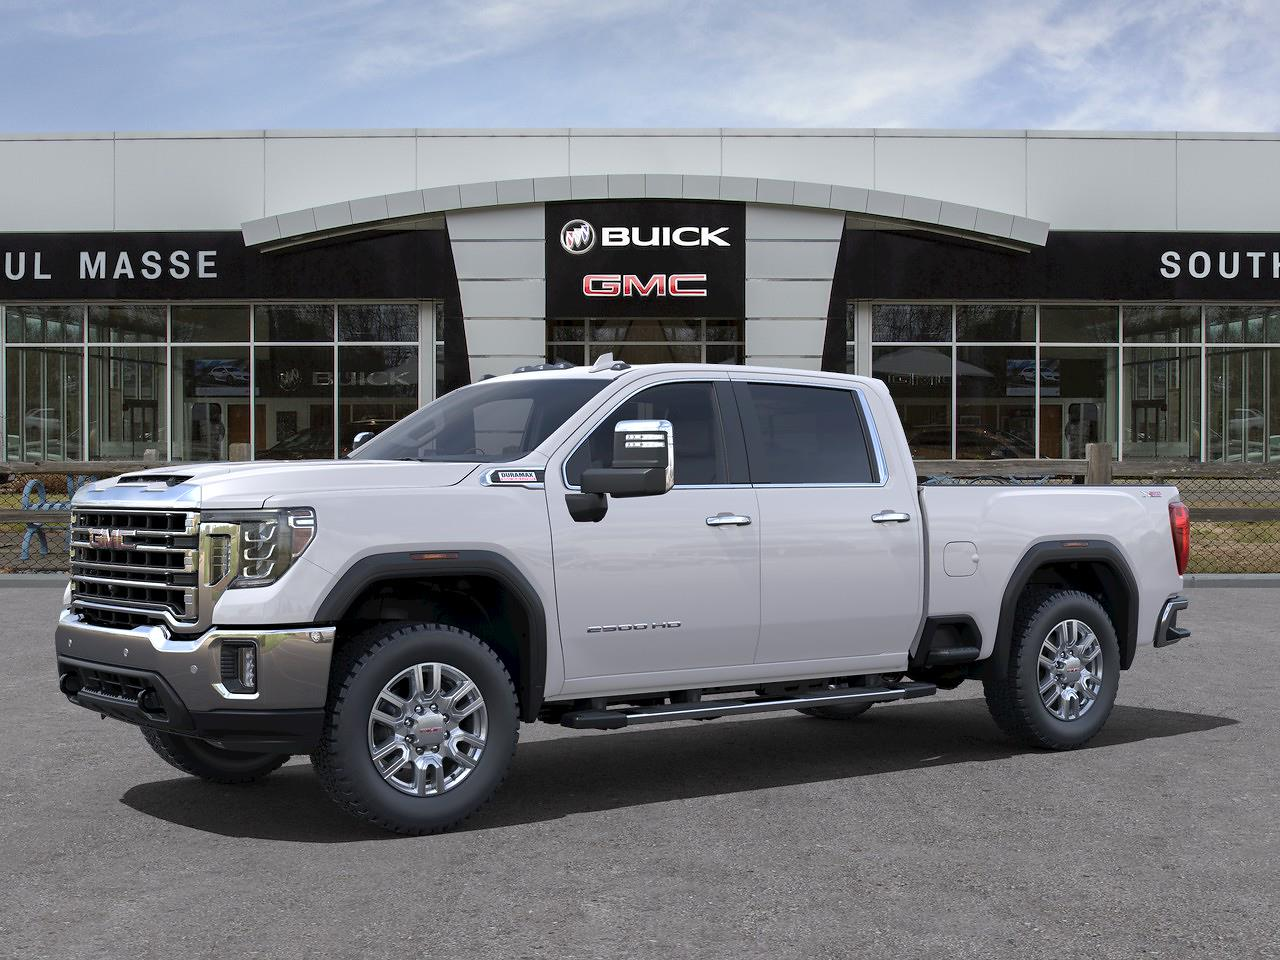 2021 GMC Sierra 2500 Crew Cab 4x4, Pickup #SR1248 - photo 3